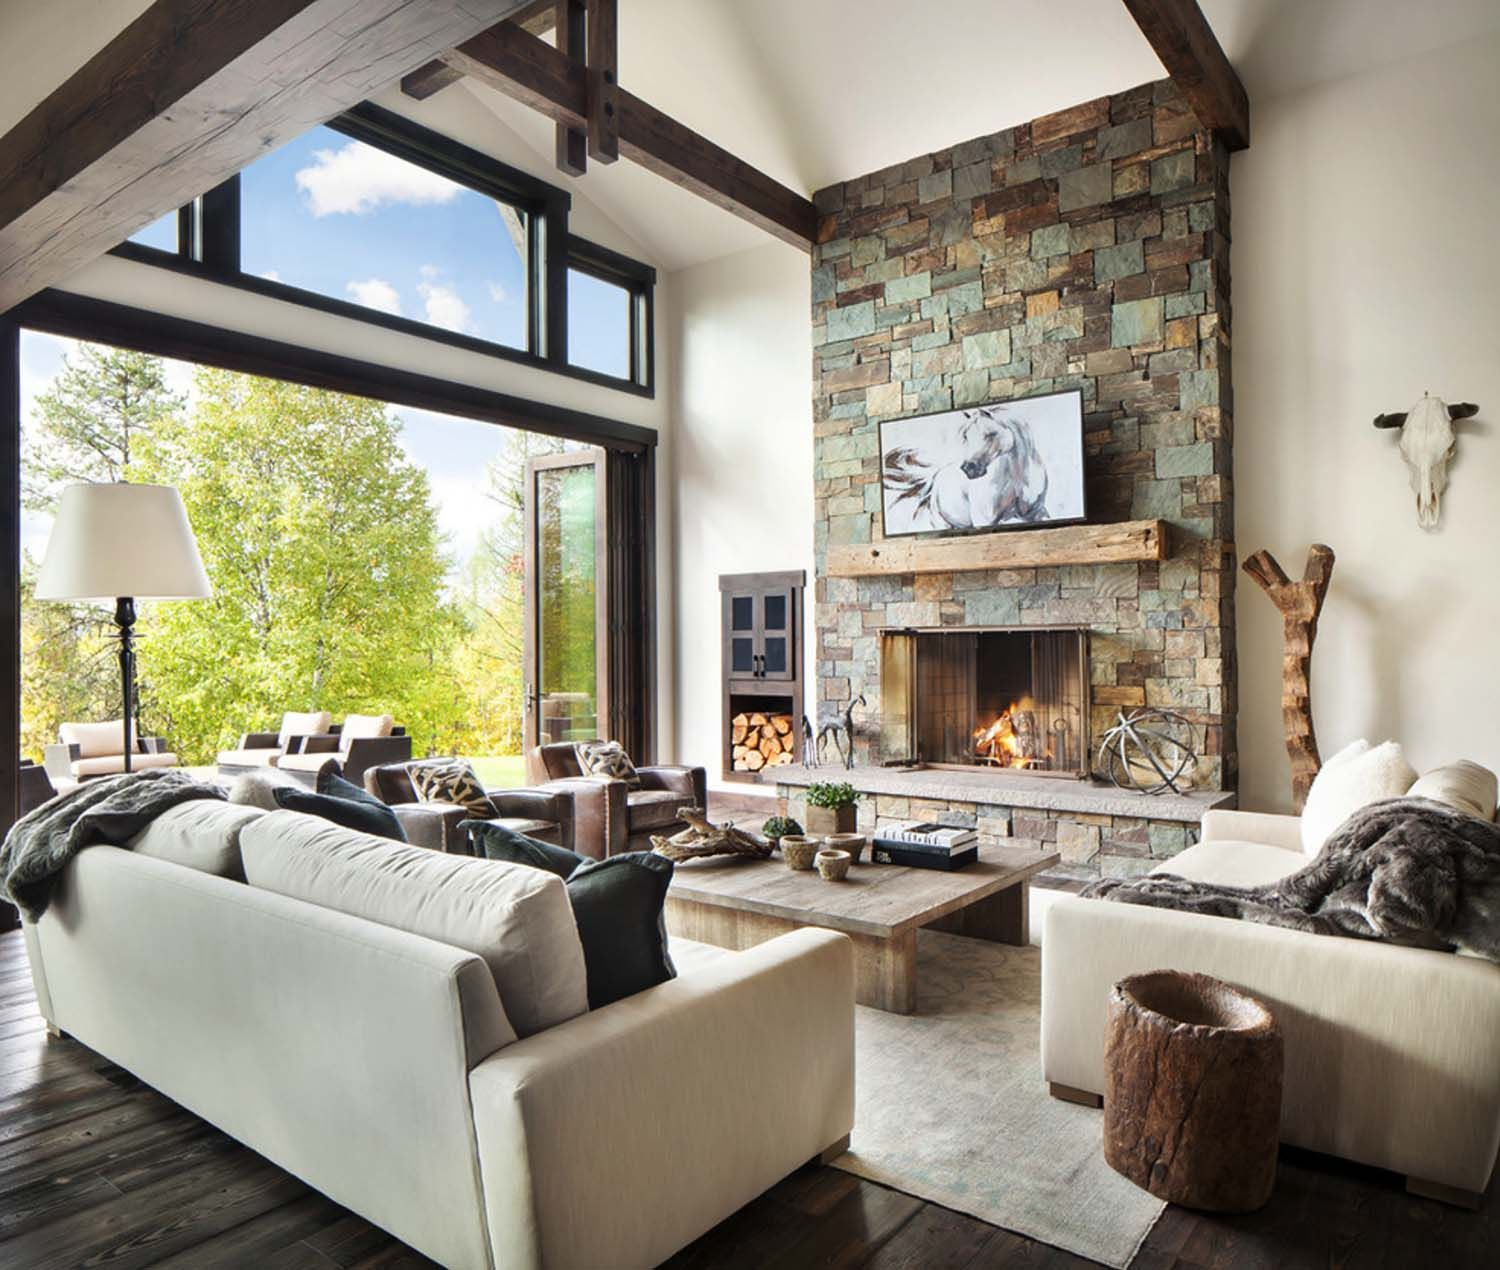 This beautifully designed rustic-modern dwelling is the creative imagination of Sage Interior Design located in Whitefish Montana. & Rustic-modern dwelling nestled in the northern Rocky Mountains ...